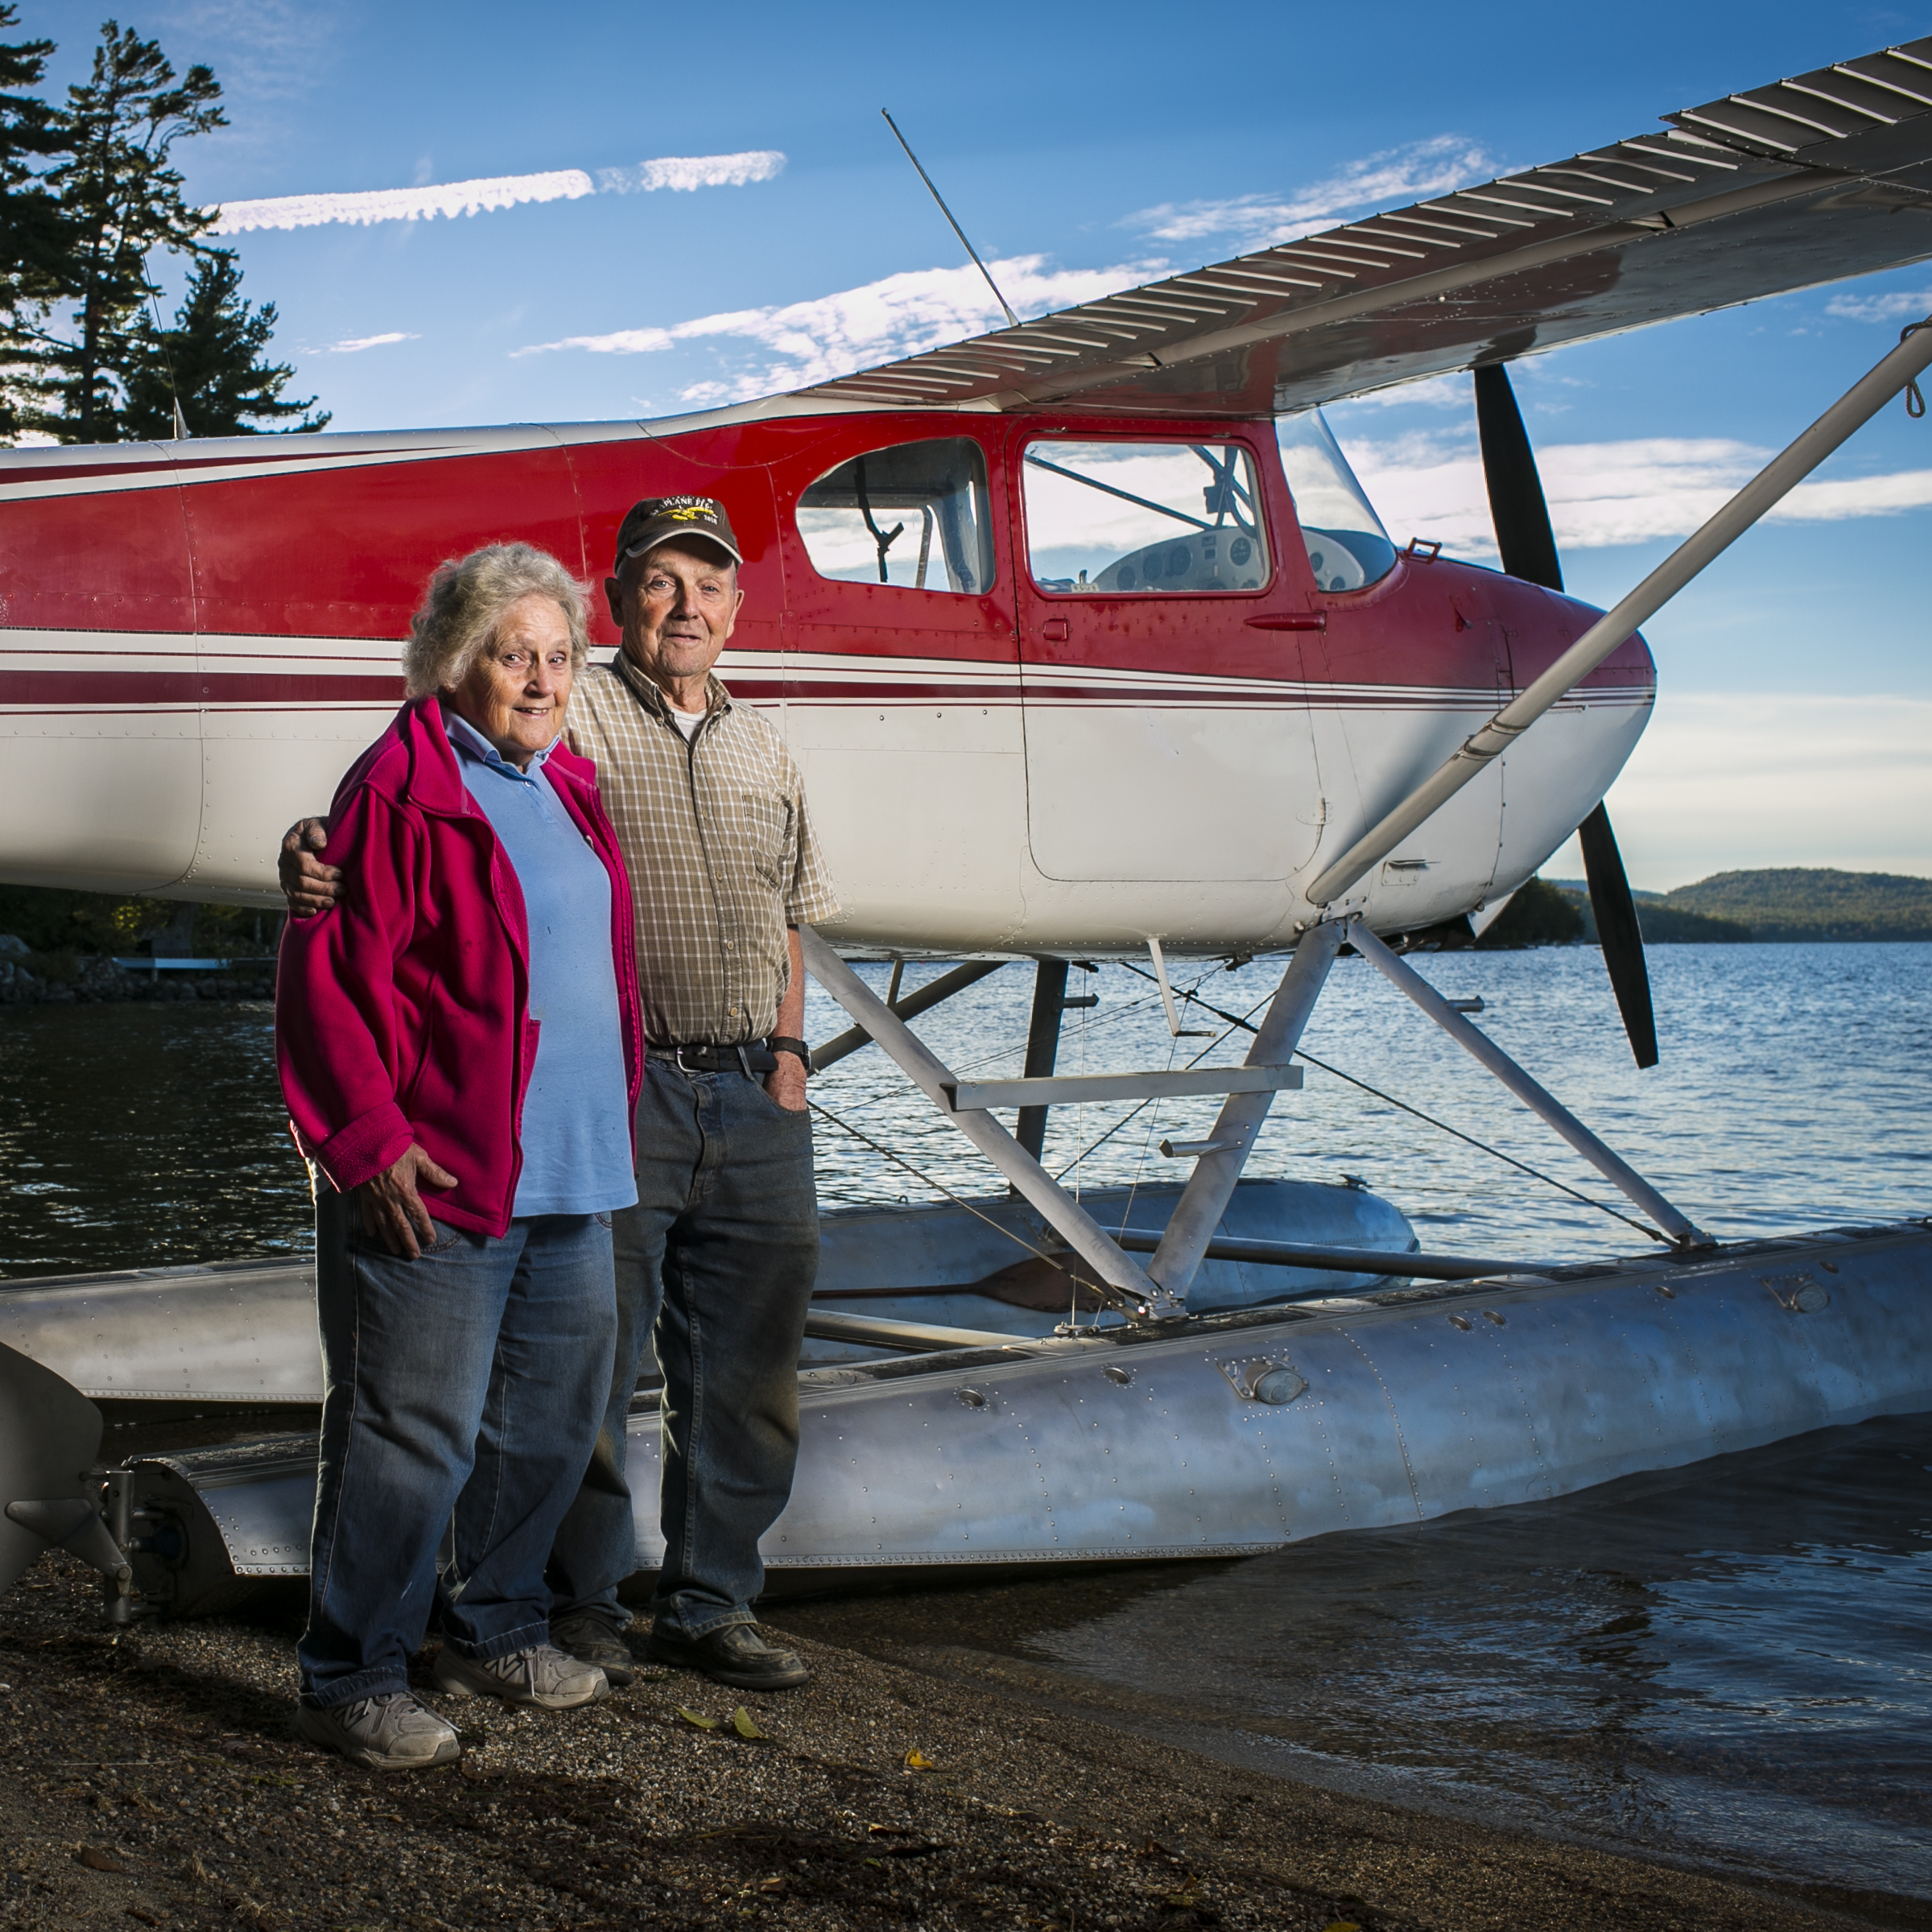 "George Dunn and his wife Donna have been together 63 years and living on the pond for more than 45 of those years. George Dunn, 85, has had a lifelong passion for flying. He first got his license in 1952 and now shares that passion with seven other members of his family who fly and own planes, including his son who now flies KC-135s for the Air National Guard in Bangor. He and his family, known as ""The Flying Dunn's,"" have been part of the Beech Hill Pond community for several years—Dunn has lived on the pond, year round, for more than 45 years and hosts an annual Fourth of July event at his hanger that draws more than 1,000 people each year."